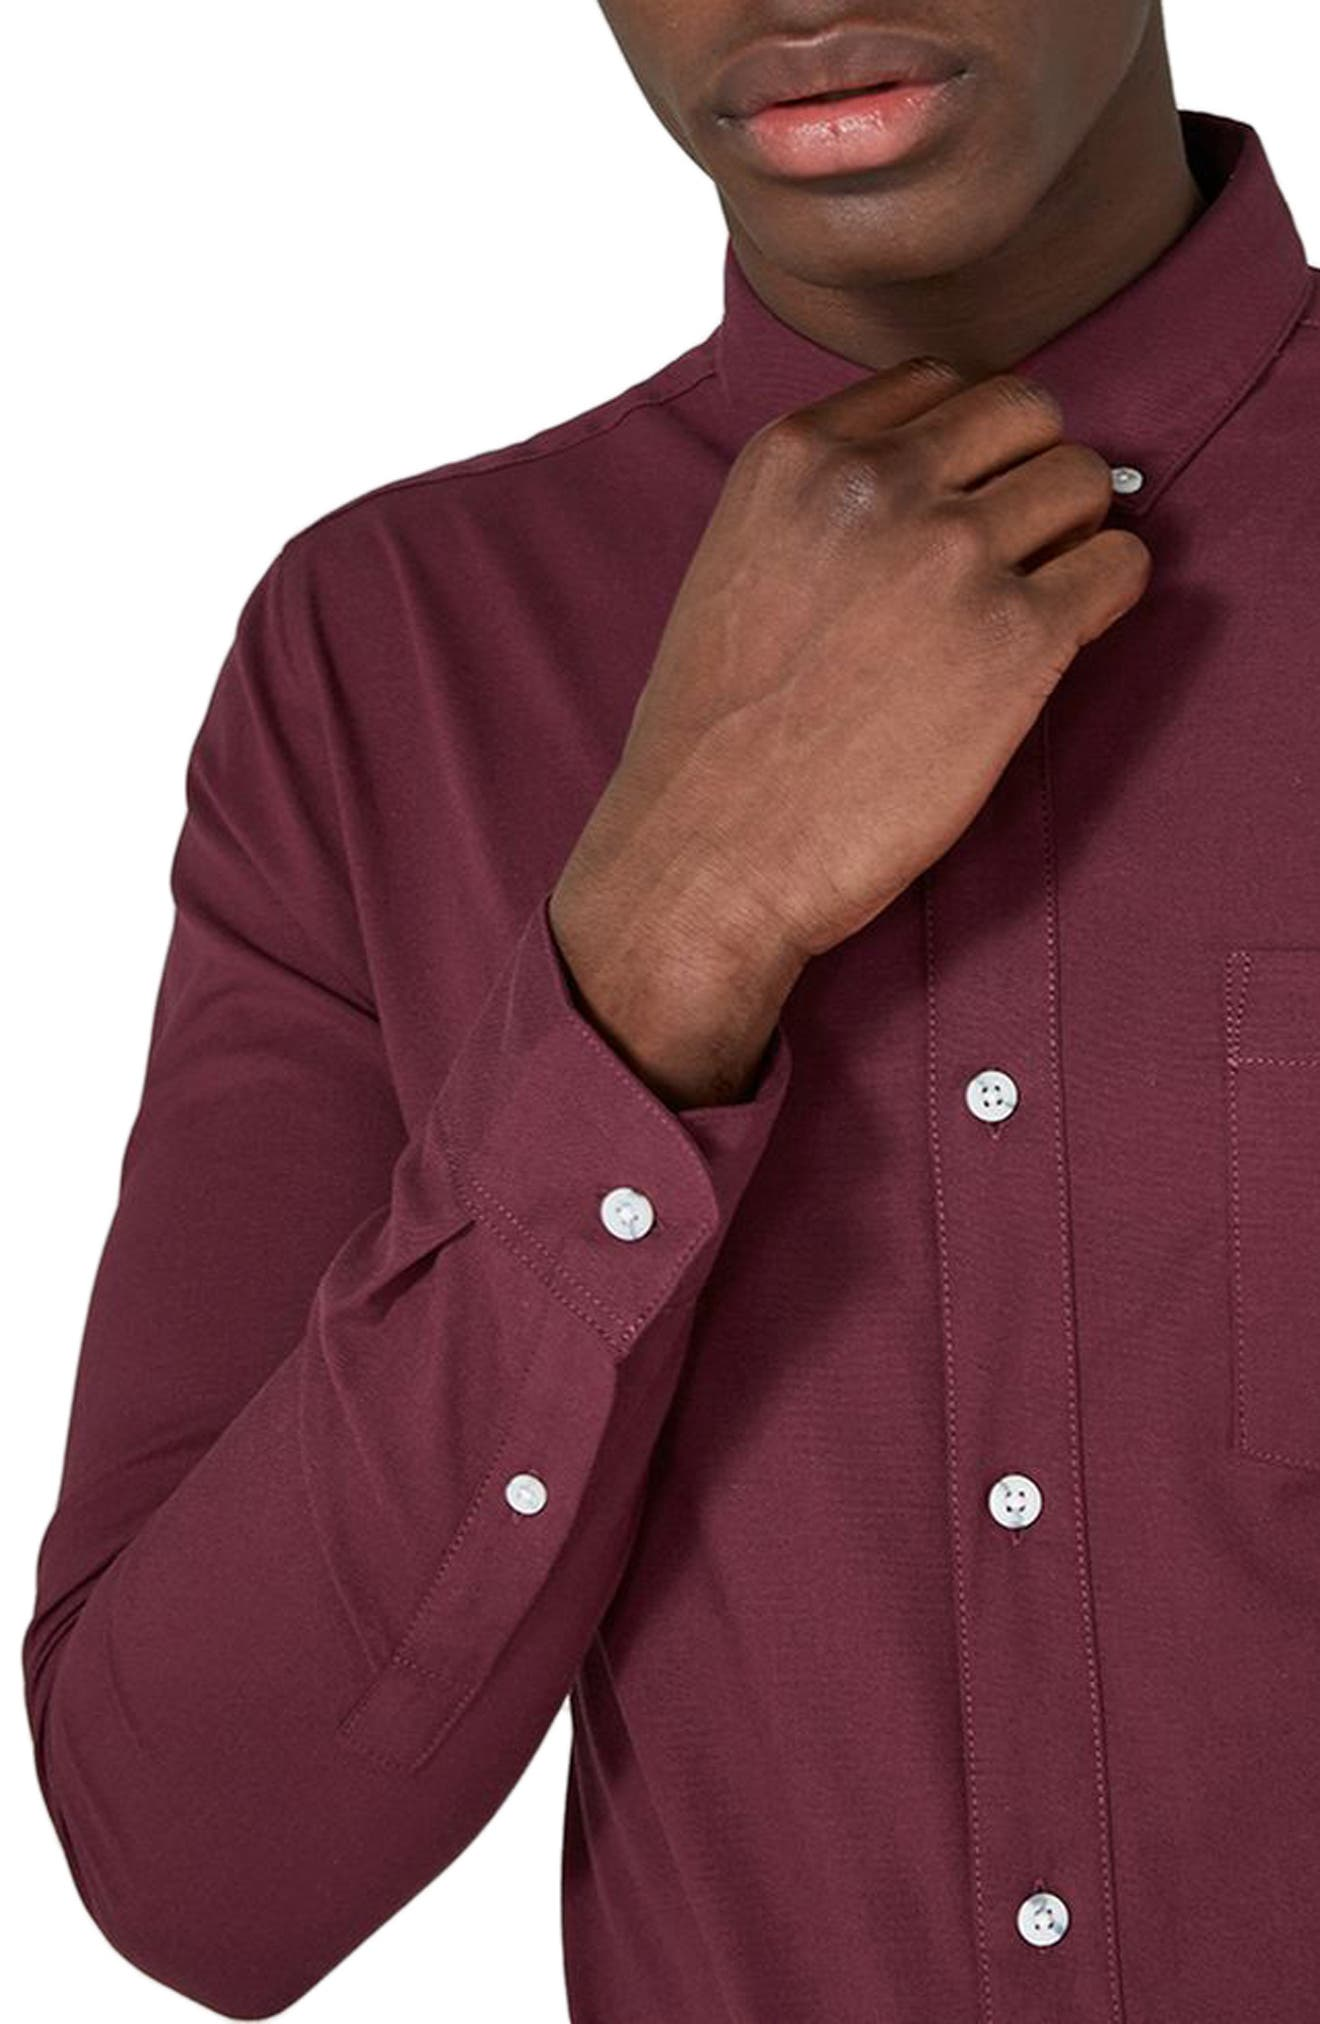 Muscle Fit Oxford Shirt,                             Alternate thumbnail 12, color,